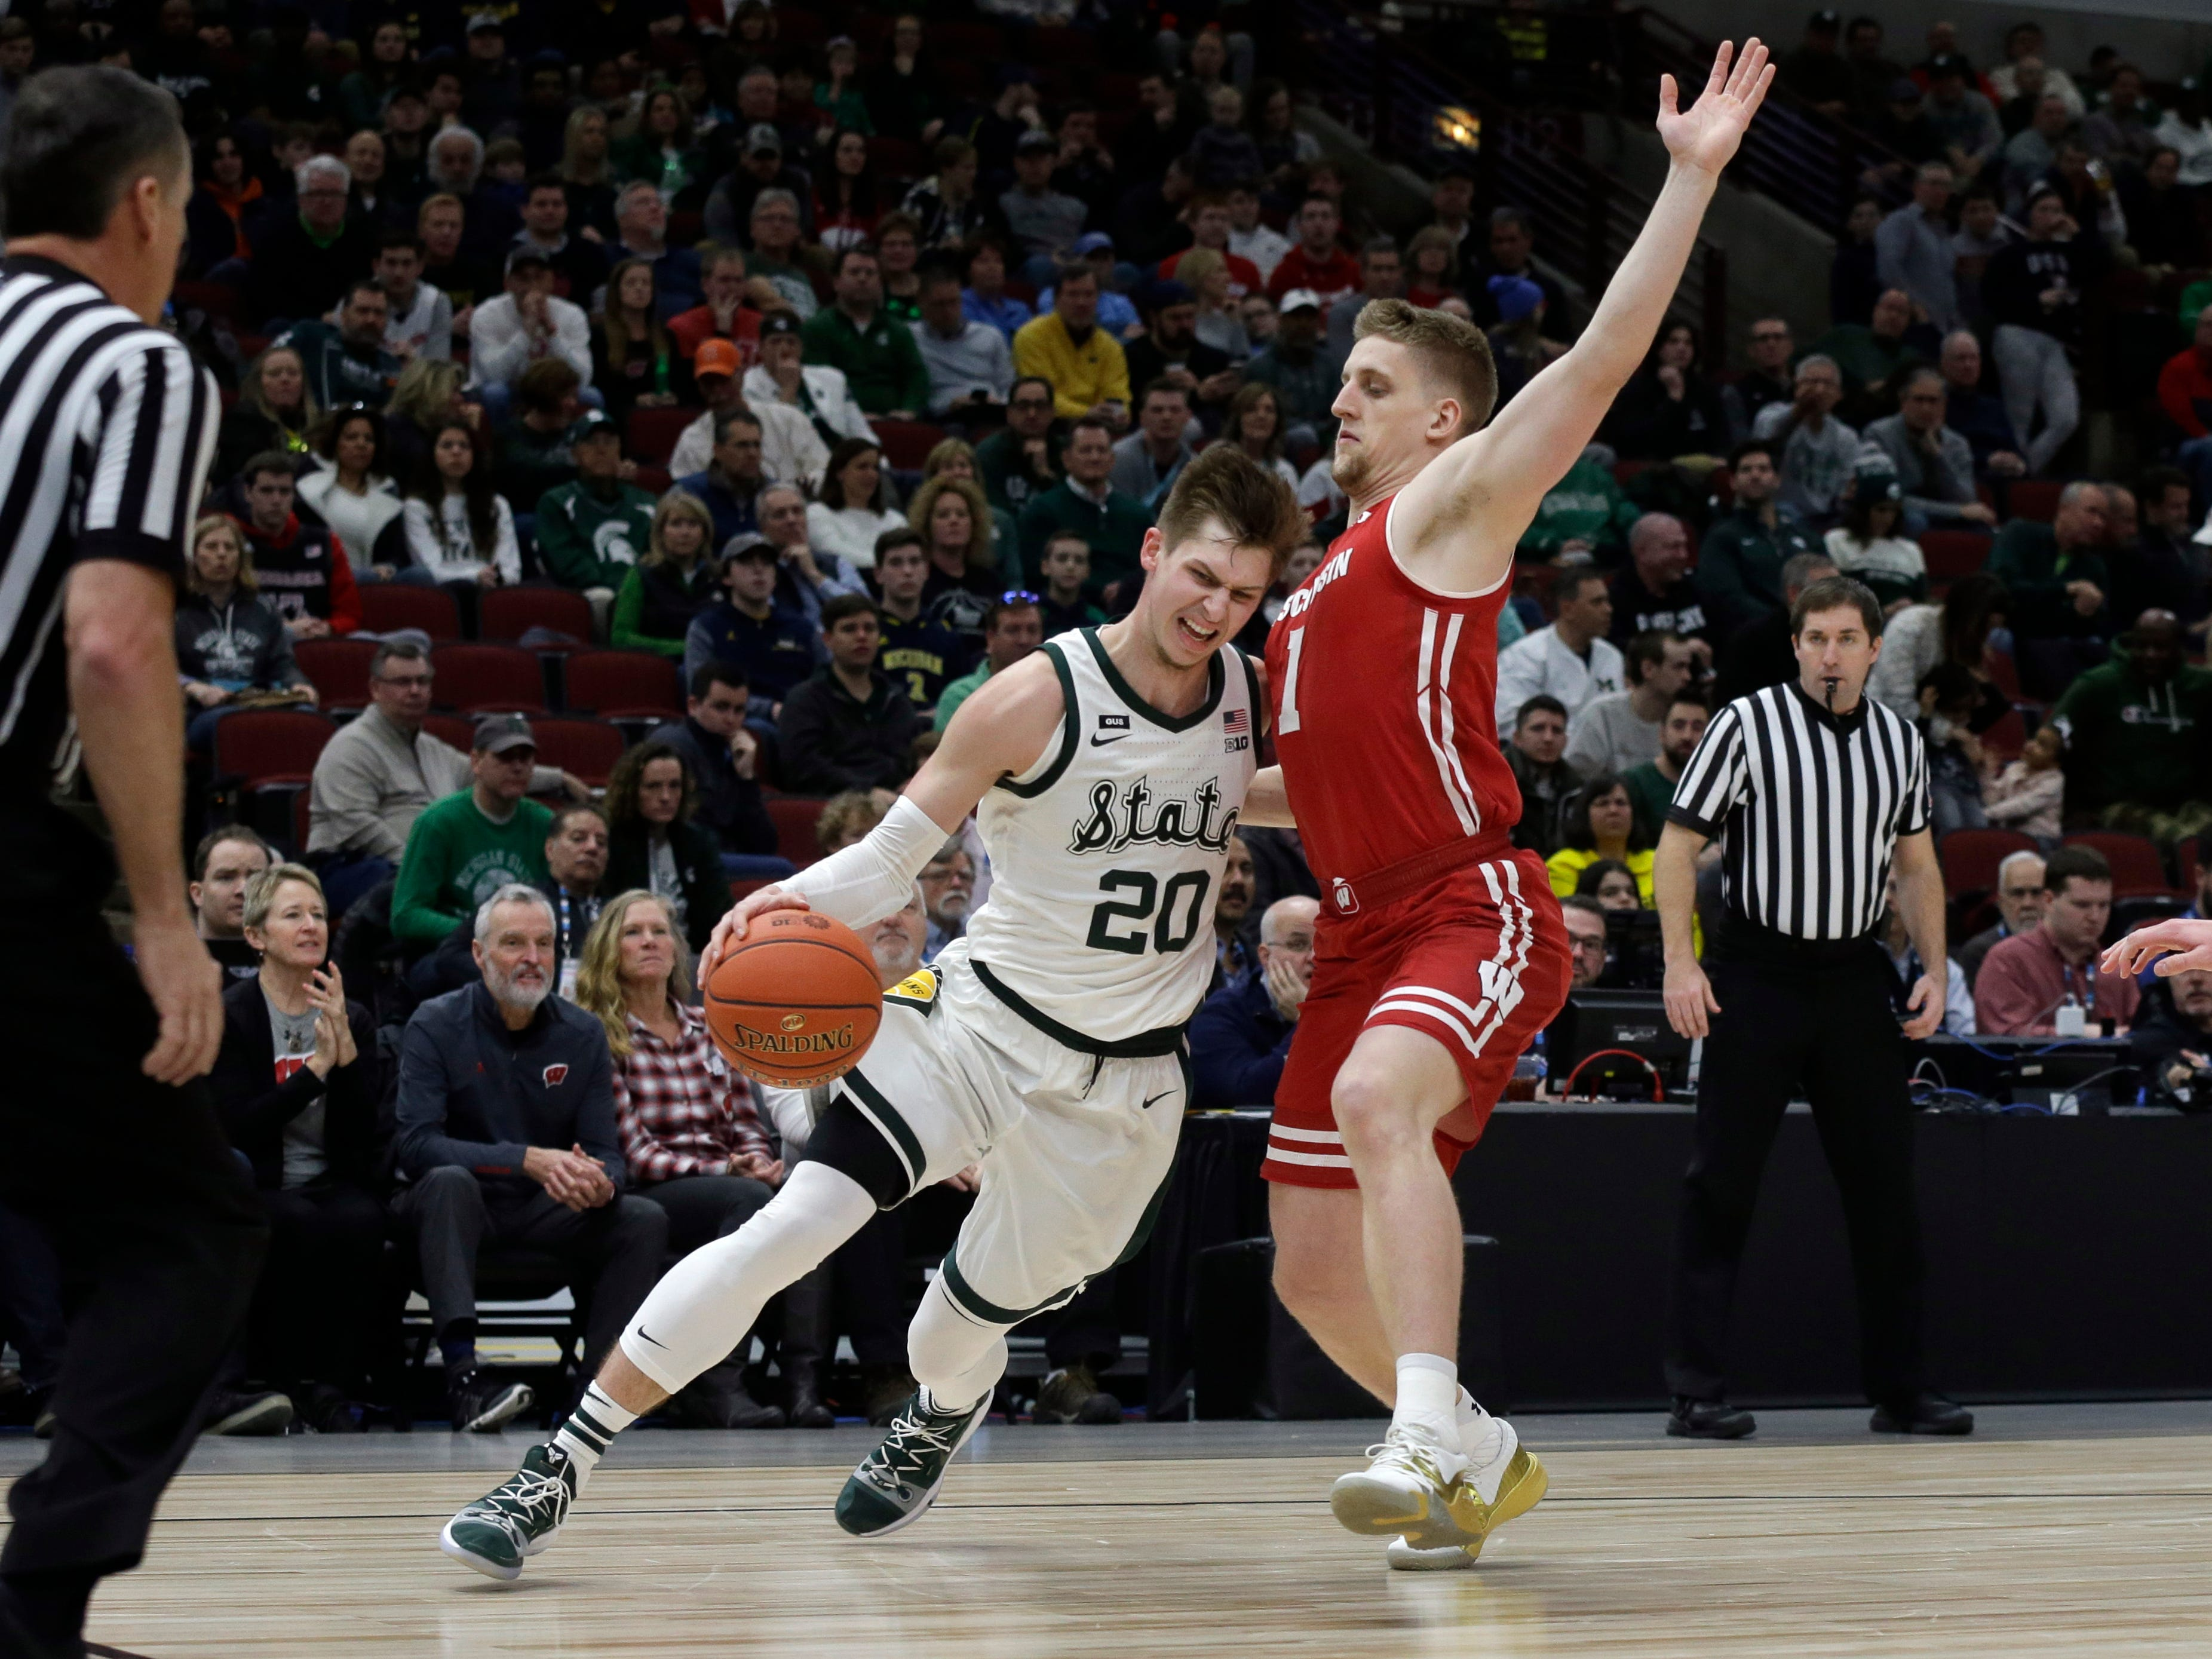 Michigan State's Matt McQuaid drives against Wisconsin's Brevin Pritzl during the first half.